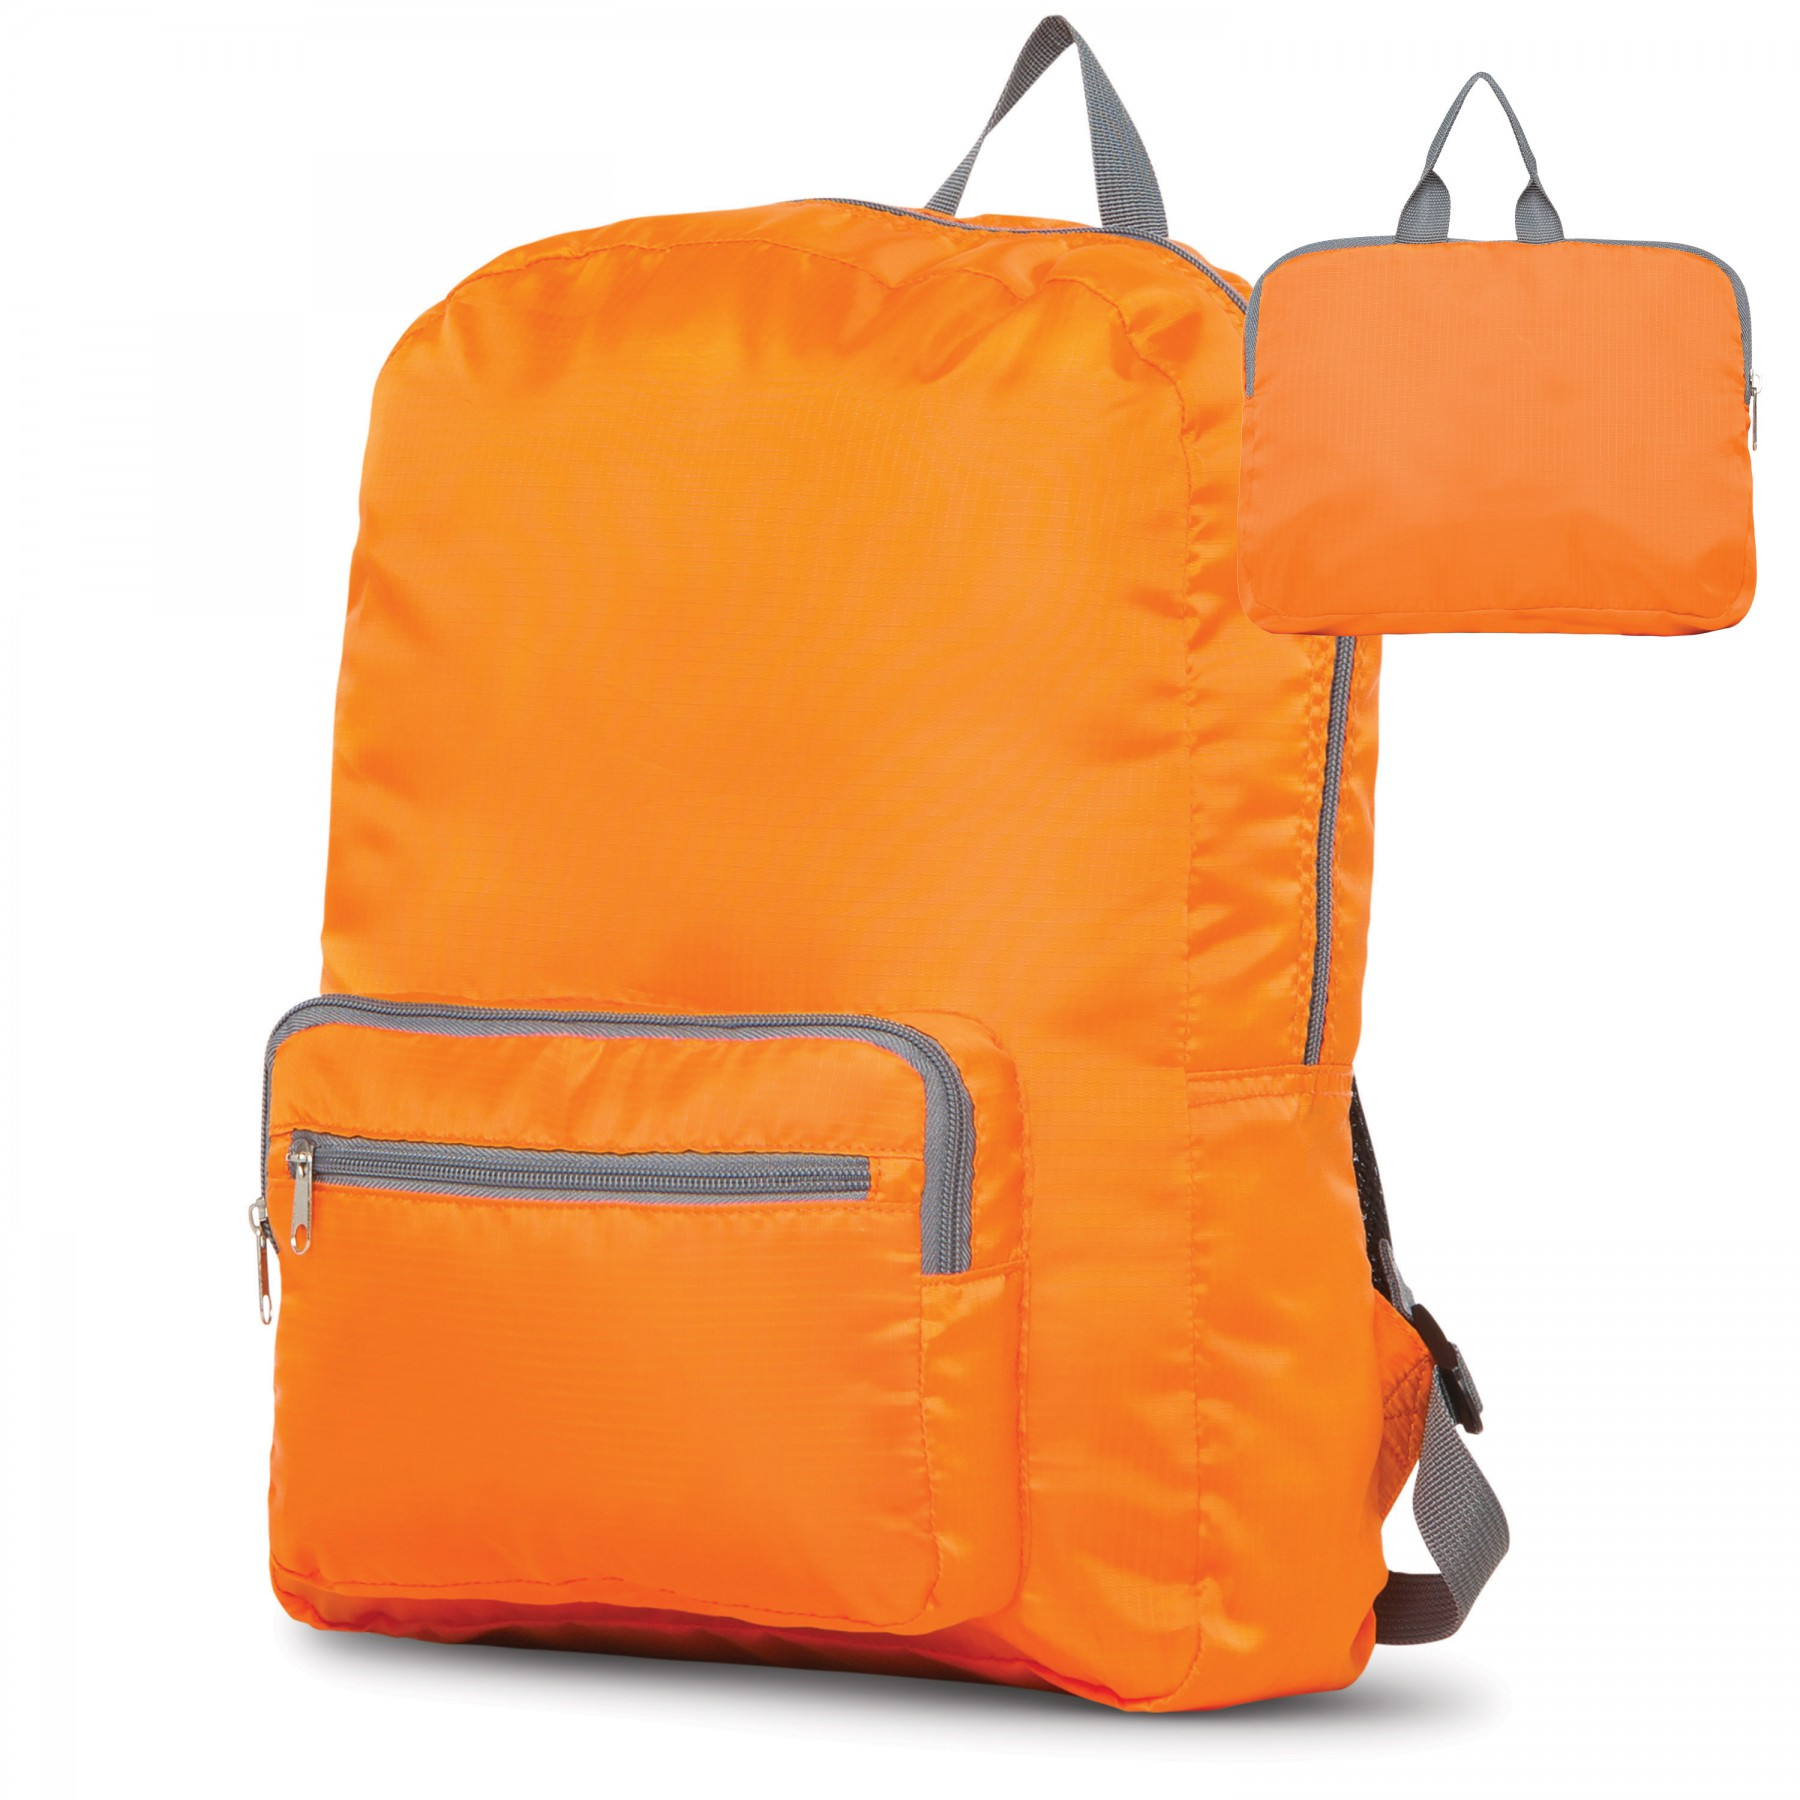 Make It Pop Packable Backpack, BG100, One Colour Imprint